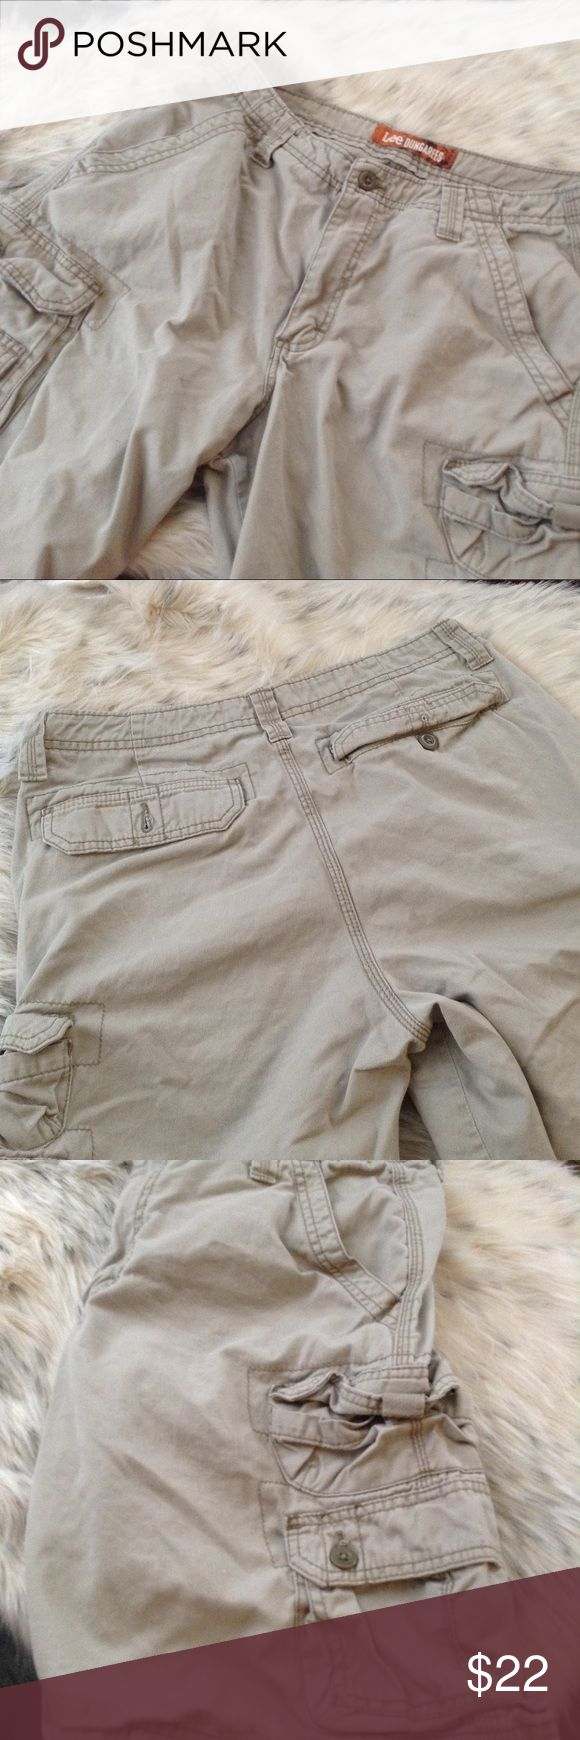 Lee Dungarees Excellent condition. Khaki cargo shorts. Lee Shorts